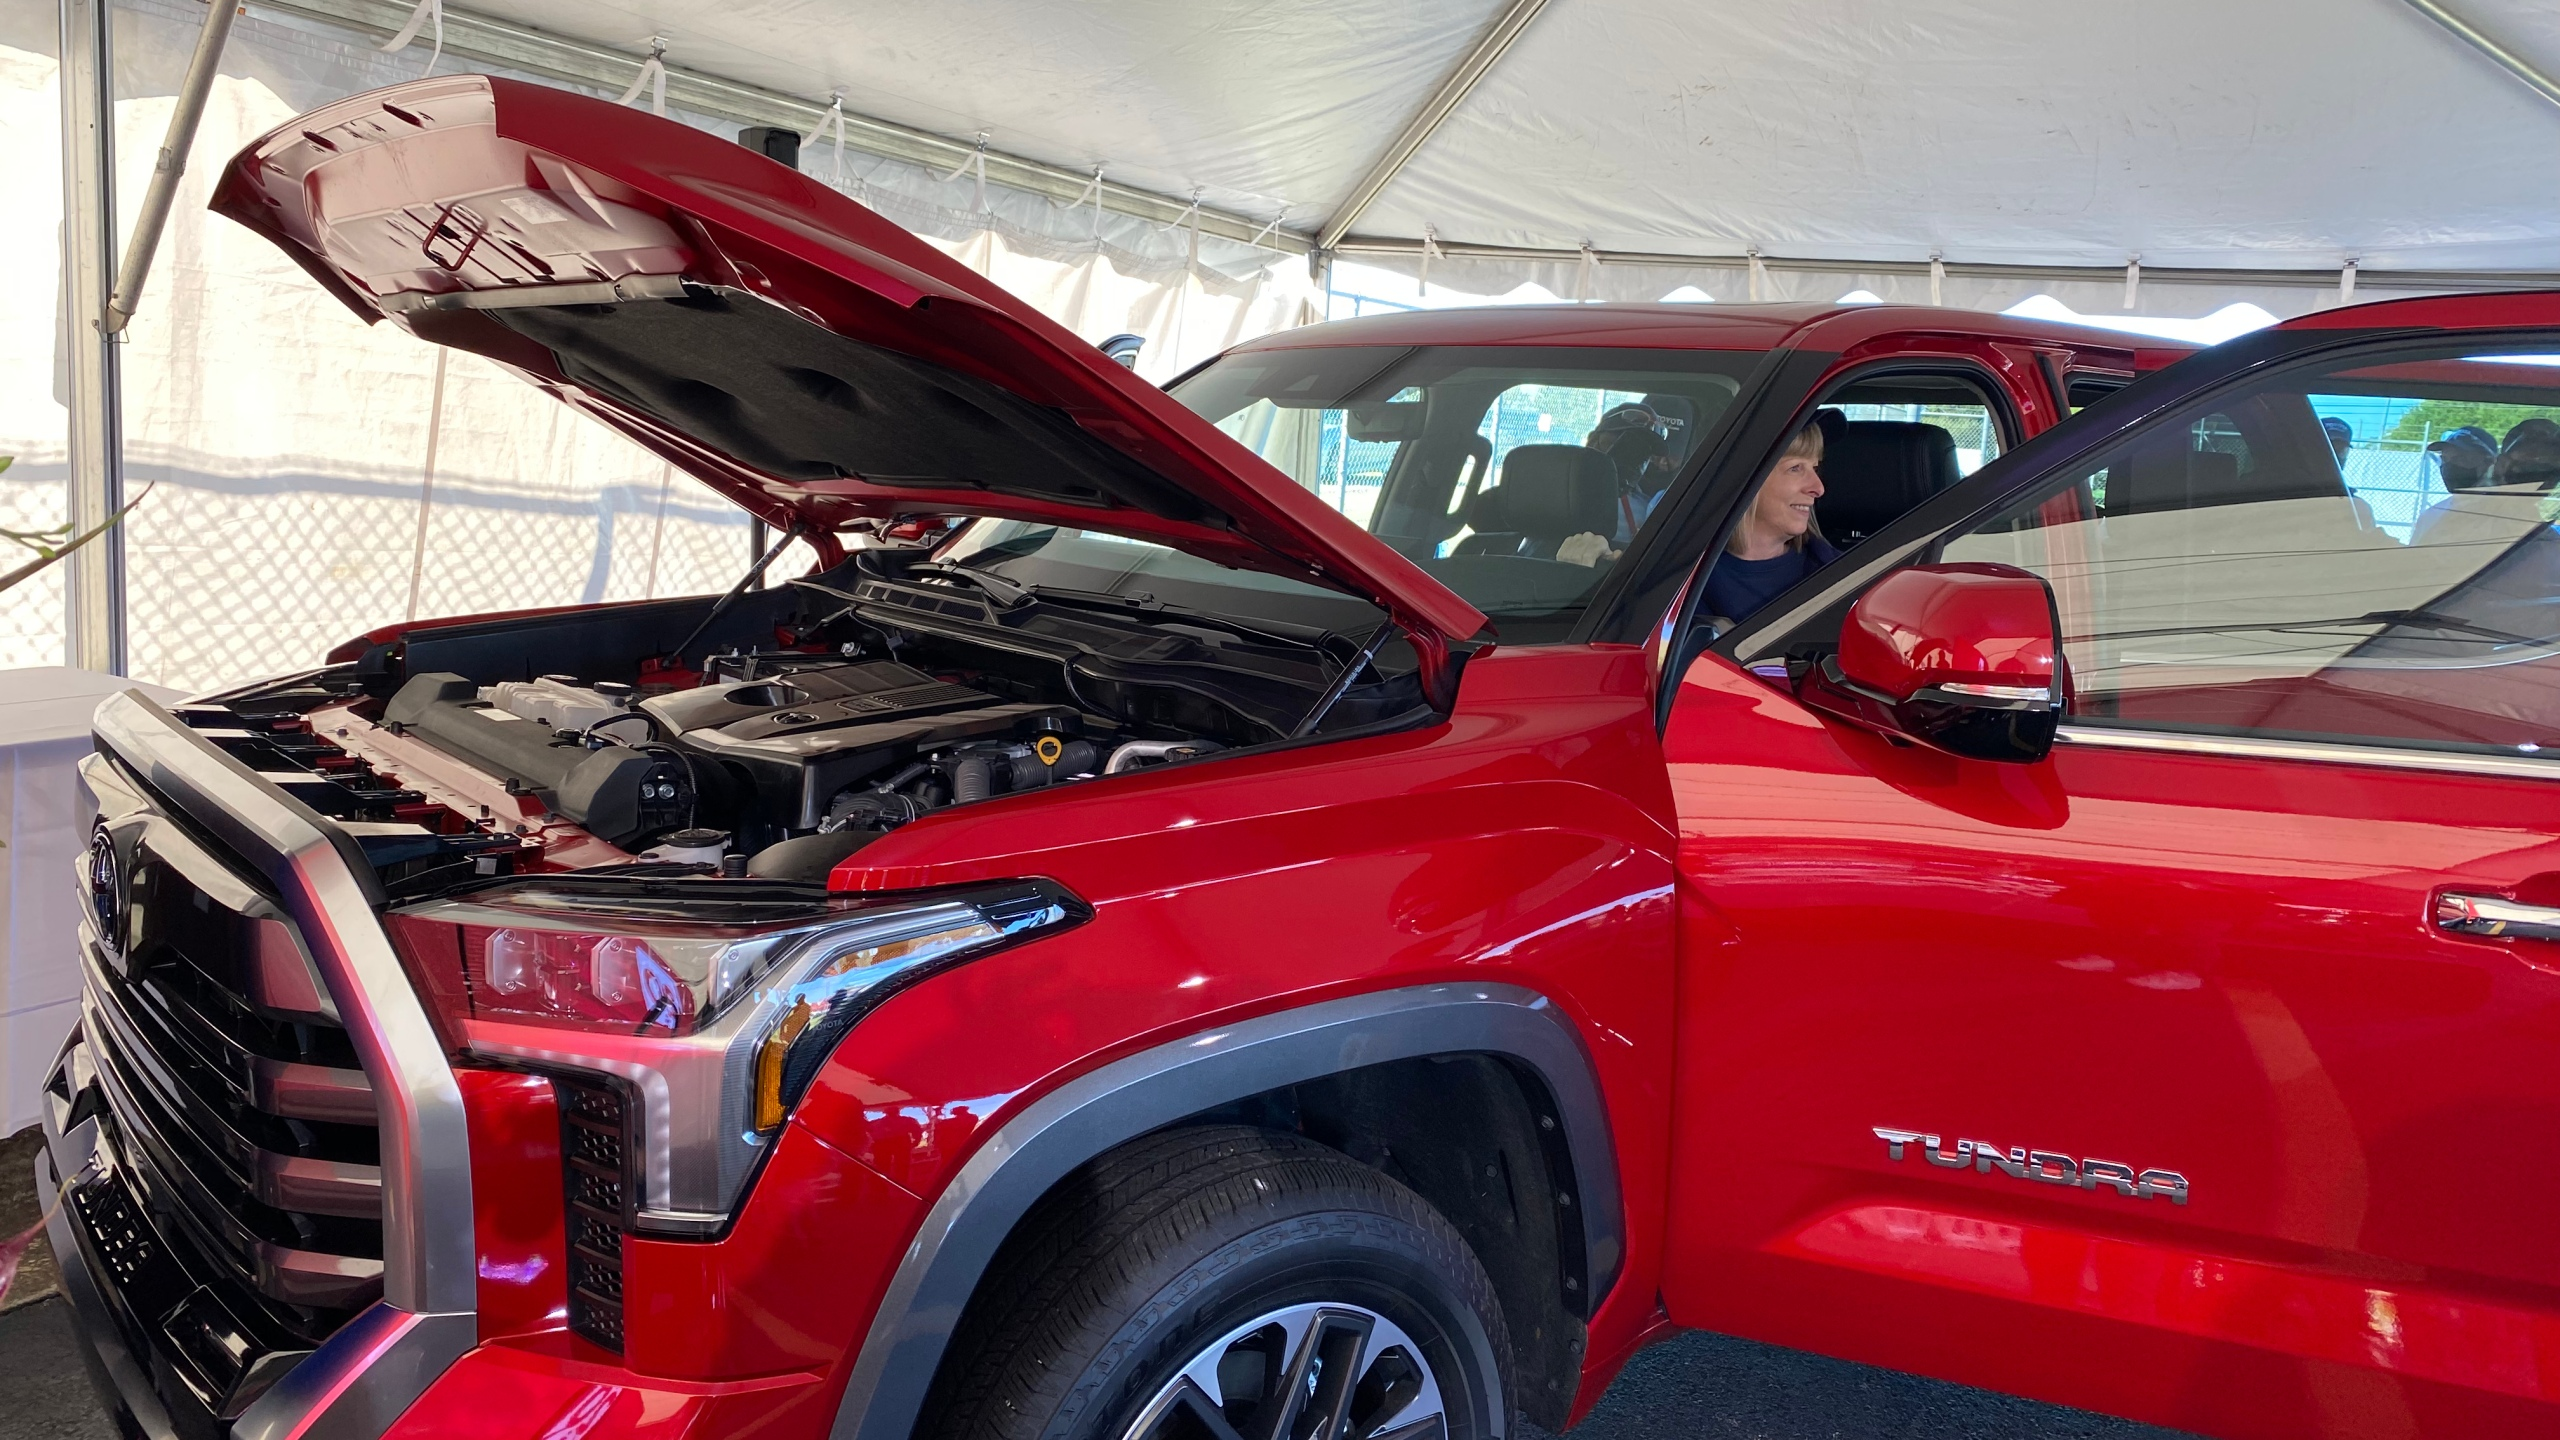 Toyota Motor Manufacturing Alabama will be the exclusive North American engine supplier for the 2022 Tundra.